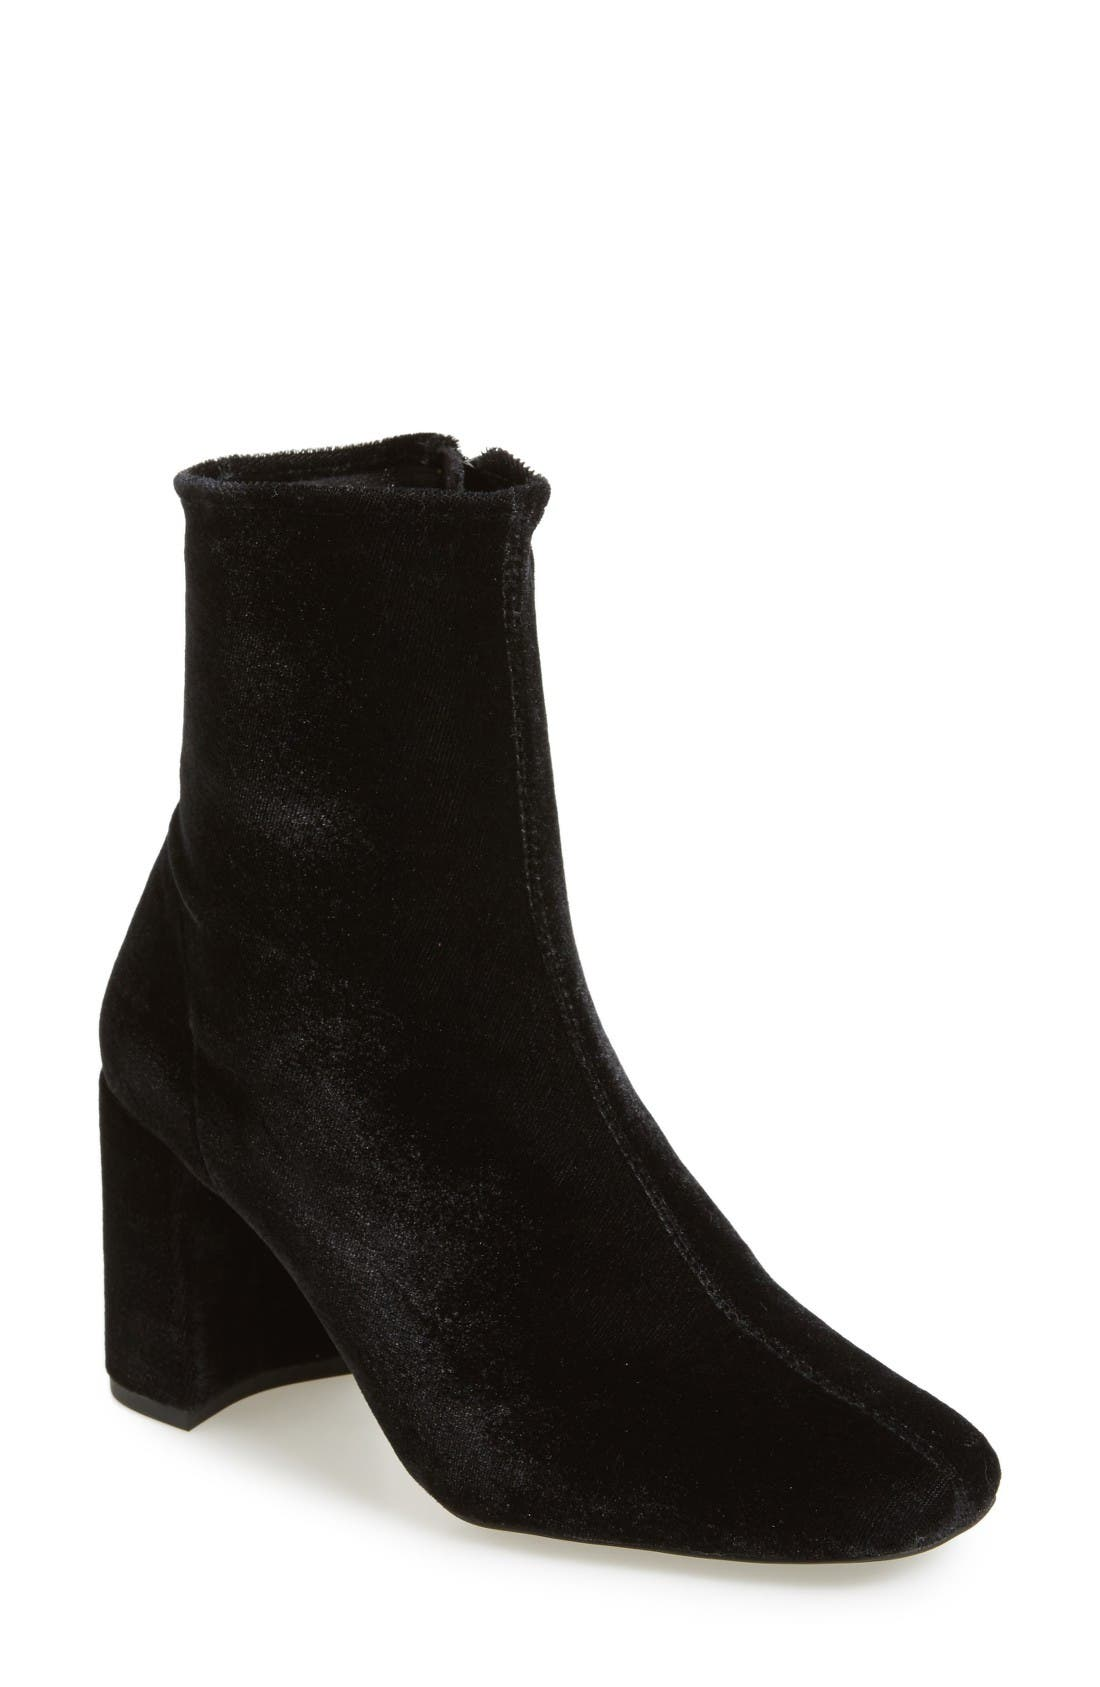 Alternate Image 1 Selected - Jeffrey Campbell Cienga Bootie (Women)